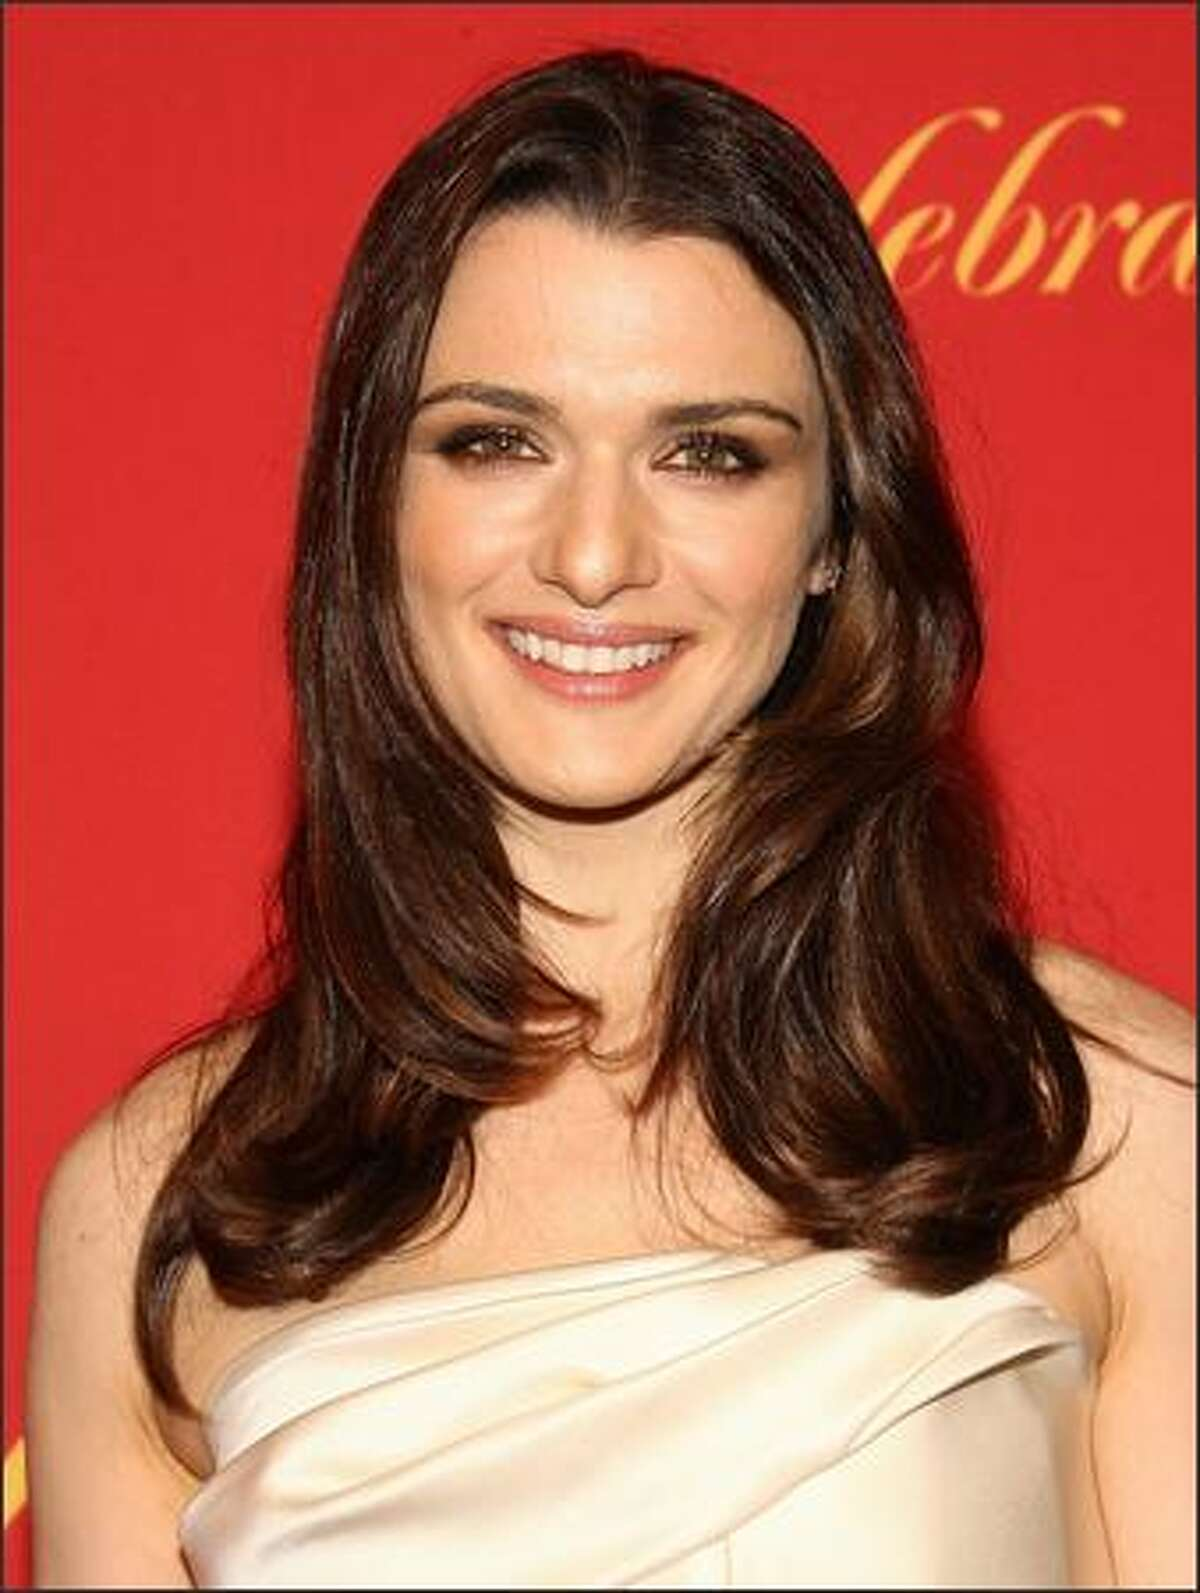 Actress Rachel Weisz attends the Cartier 100th Anniversary in America Celebration at Cartier Fifth Avenue Mansion in New York City.